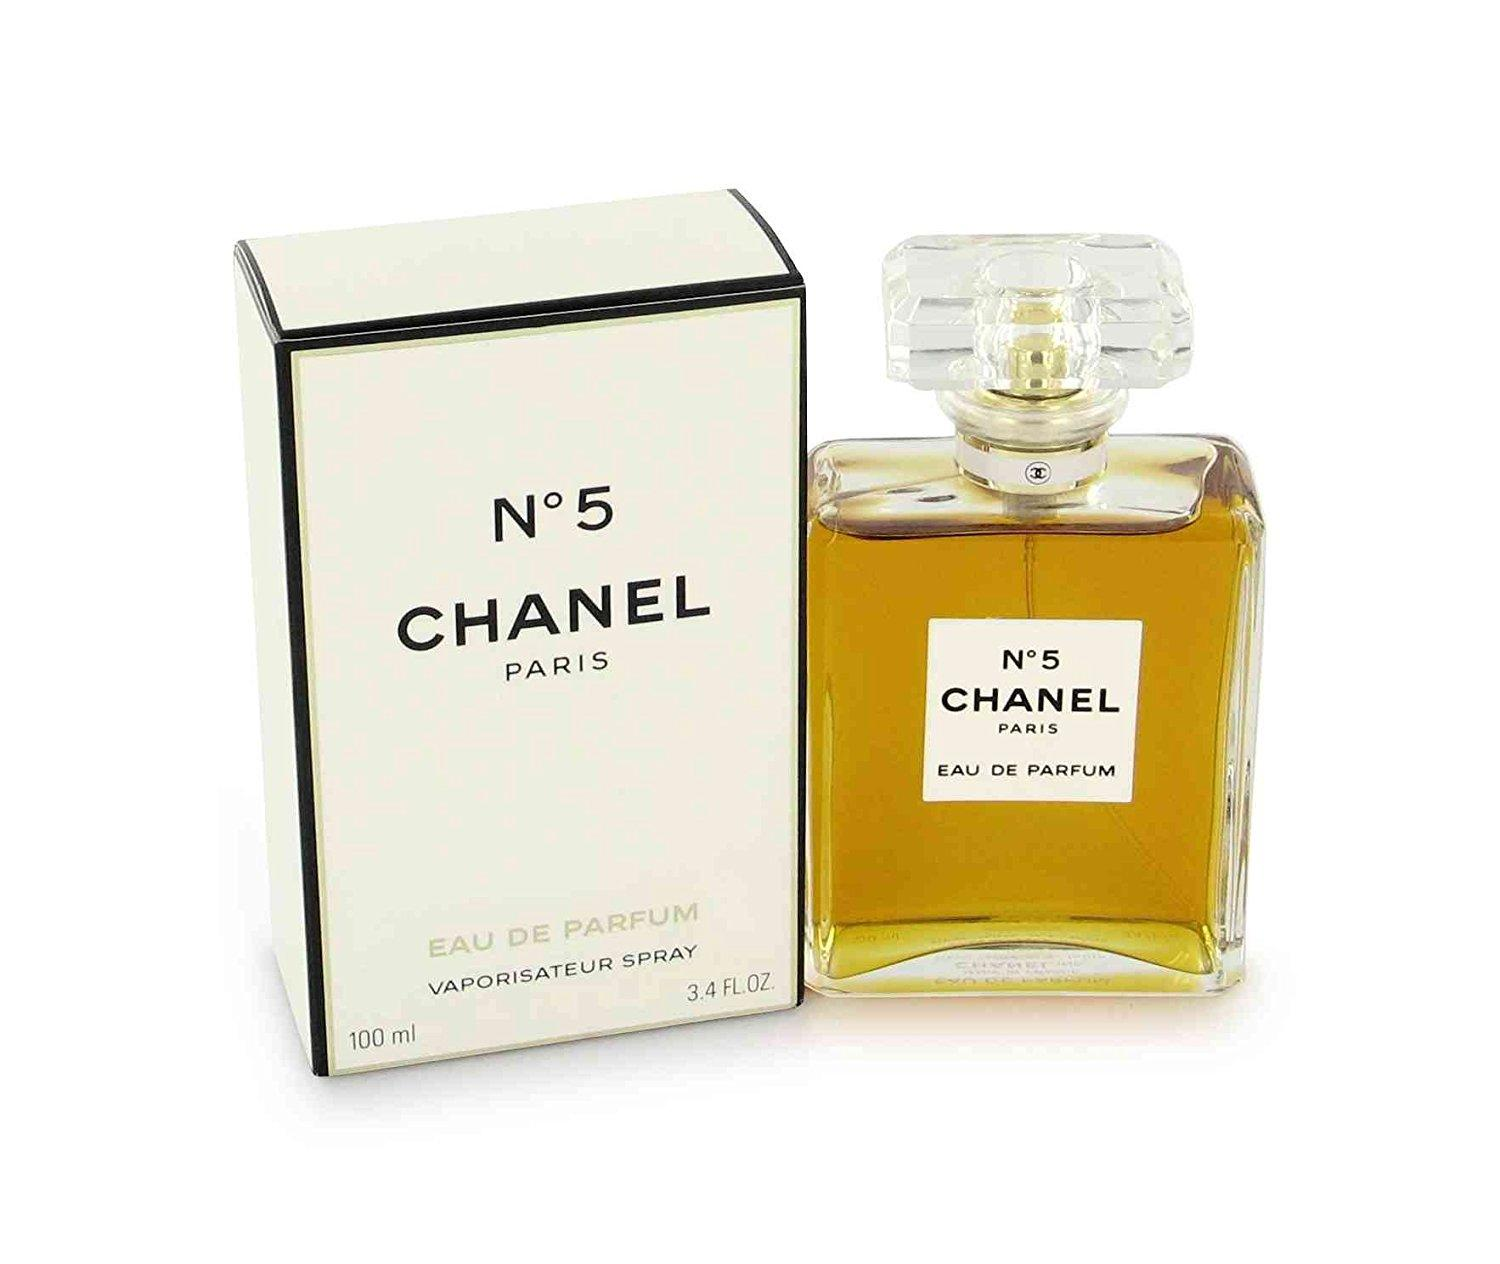 Chanel Philippines Chanel Price List Chanel Perfumes Cosmetics